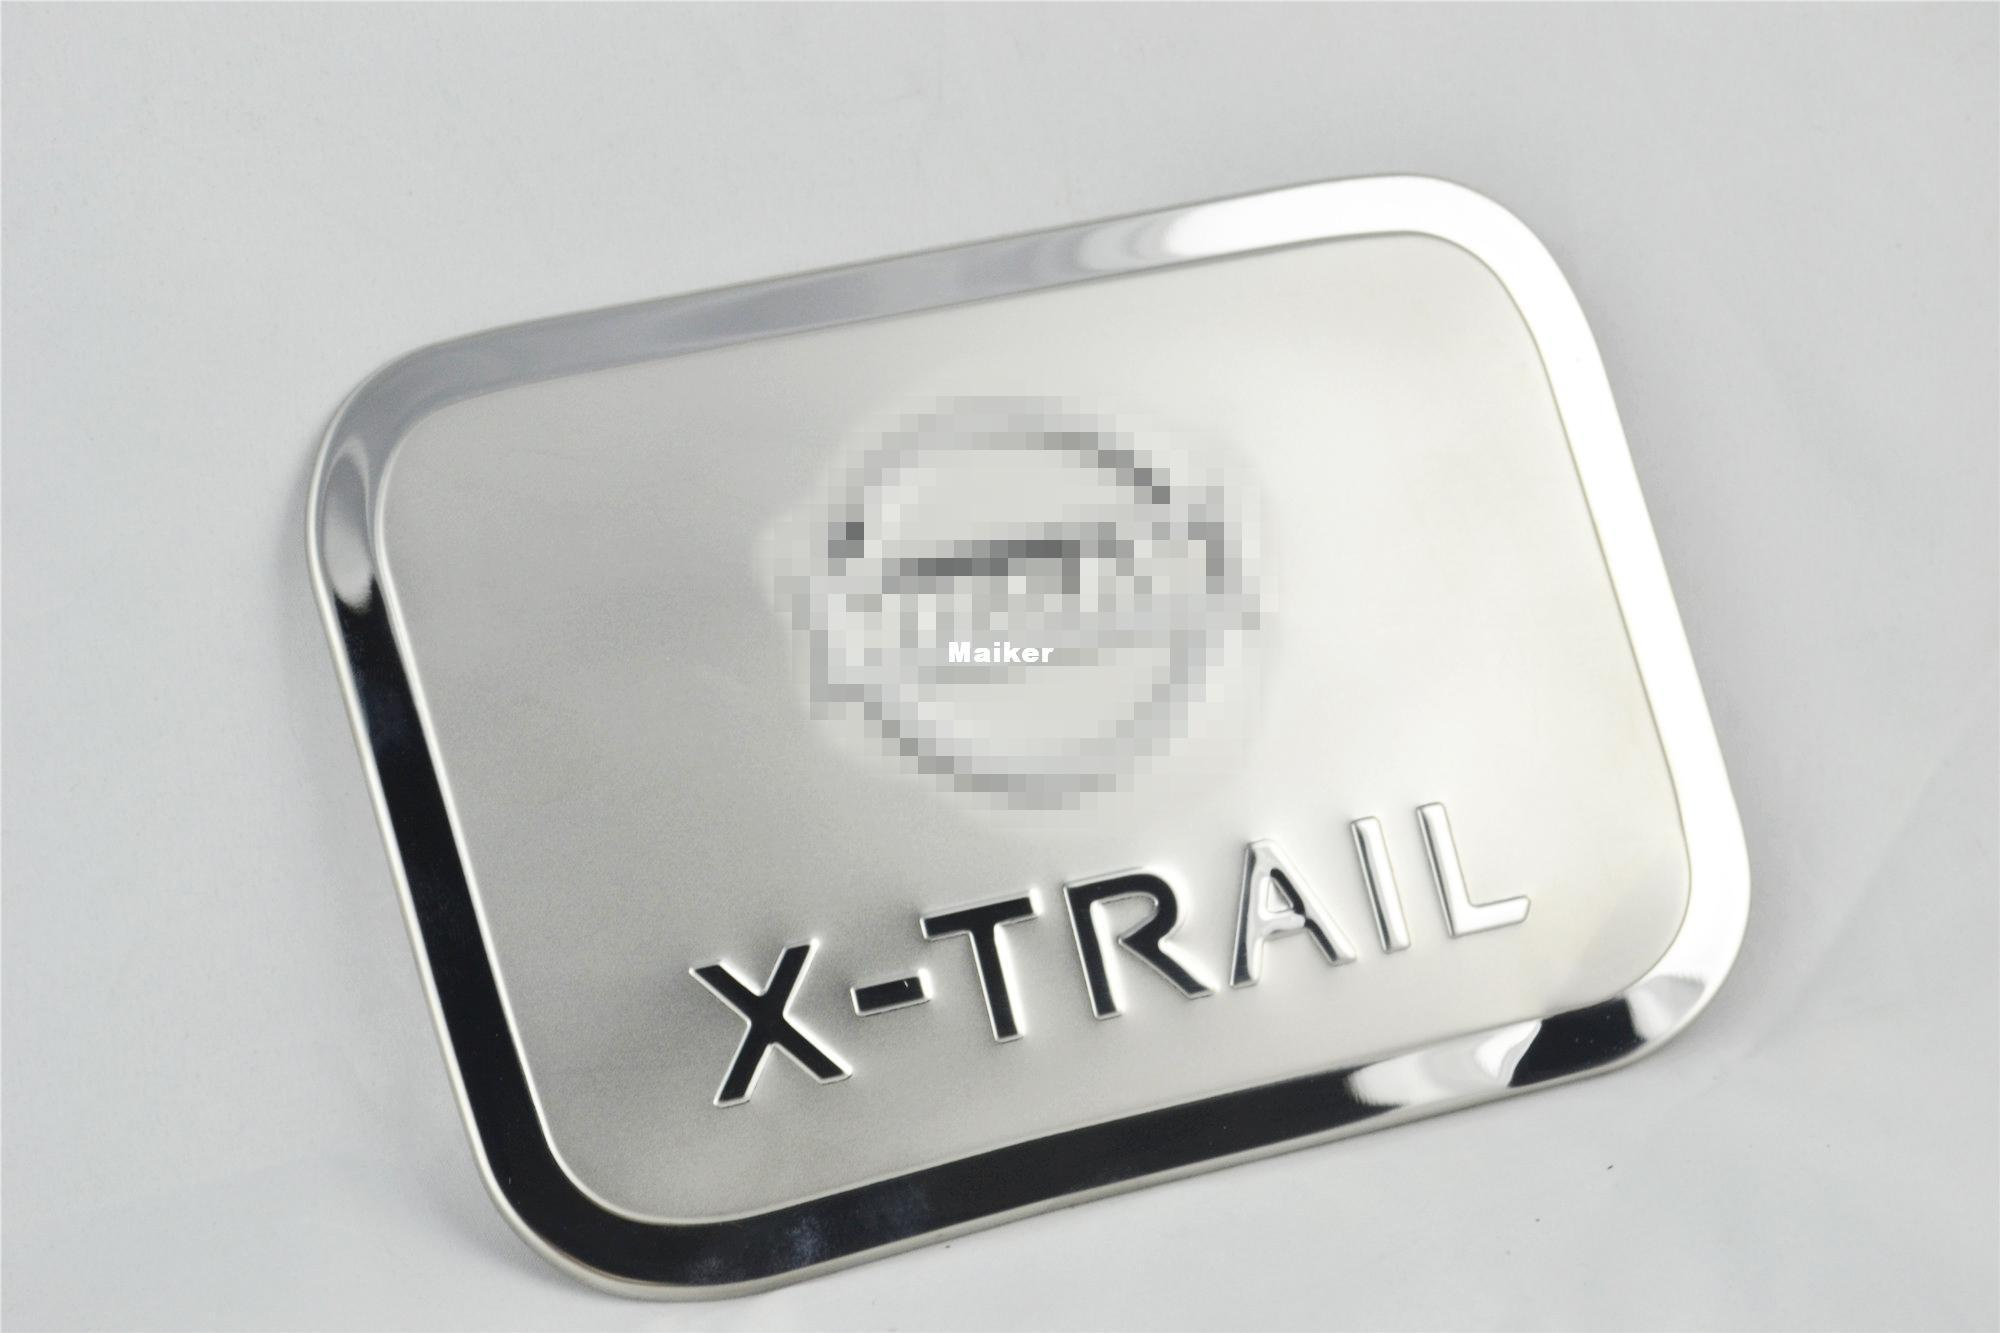 X Trail Petrol Release Nissan X Trail X Trail Special Stainless